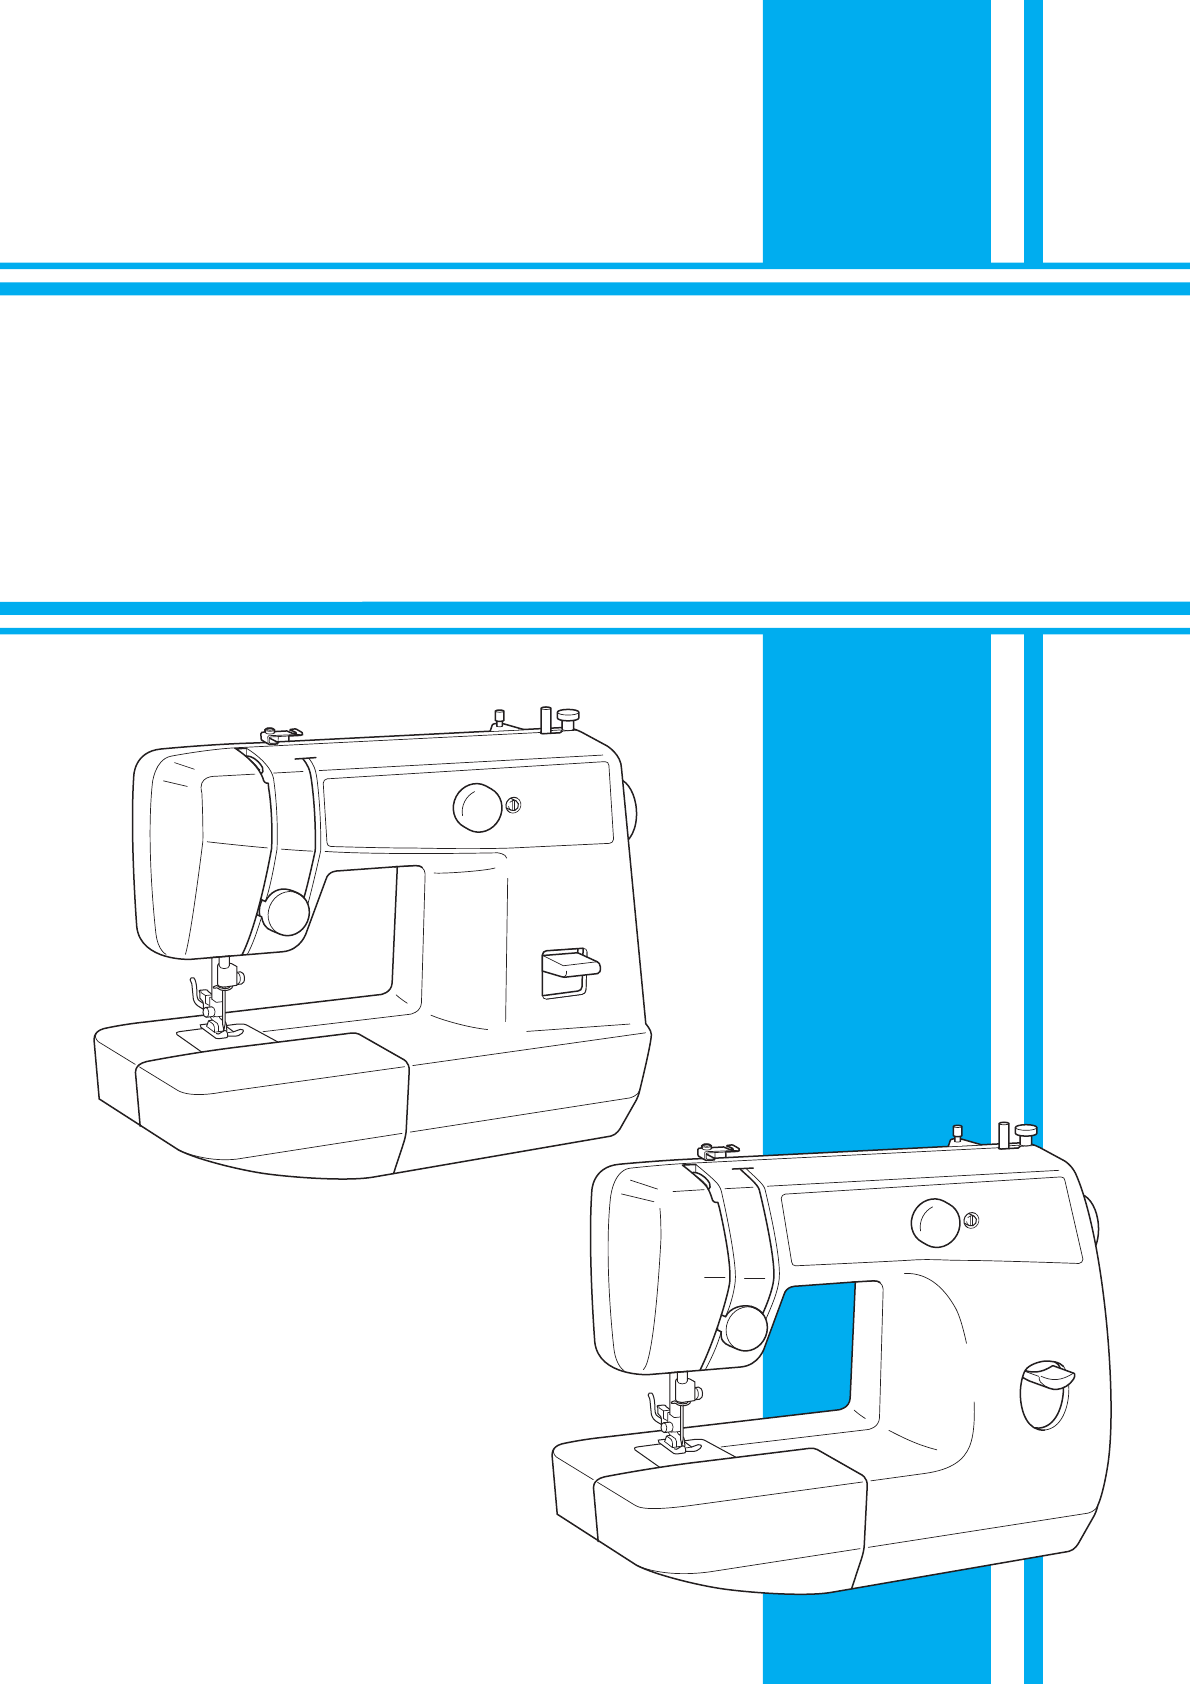 brothers ls 1520 sewing machine